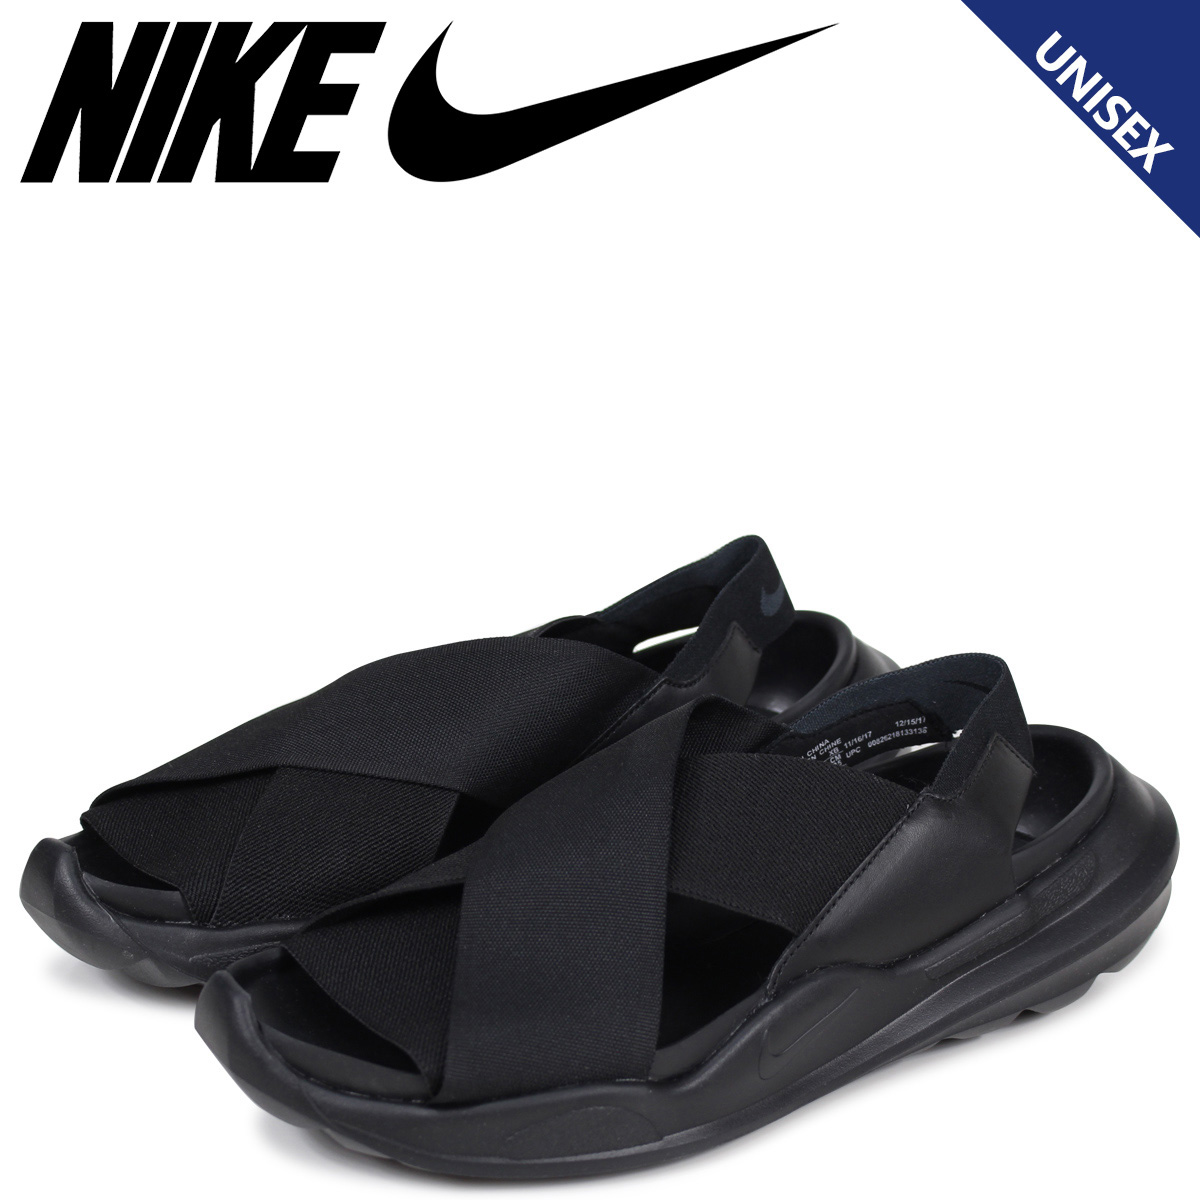 b9759ca75560 Sugar Online Shop  NIKE Nike Lady s men sandals WMNS PRAKTISK AO2722 ...